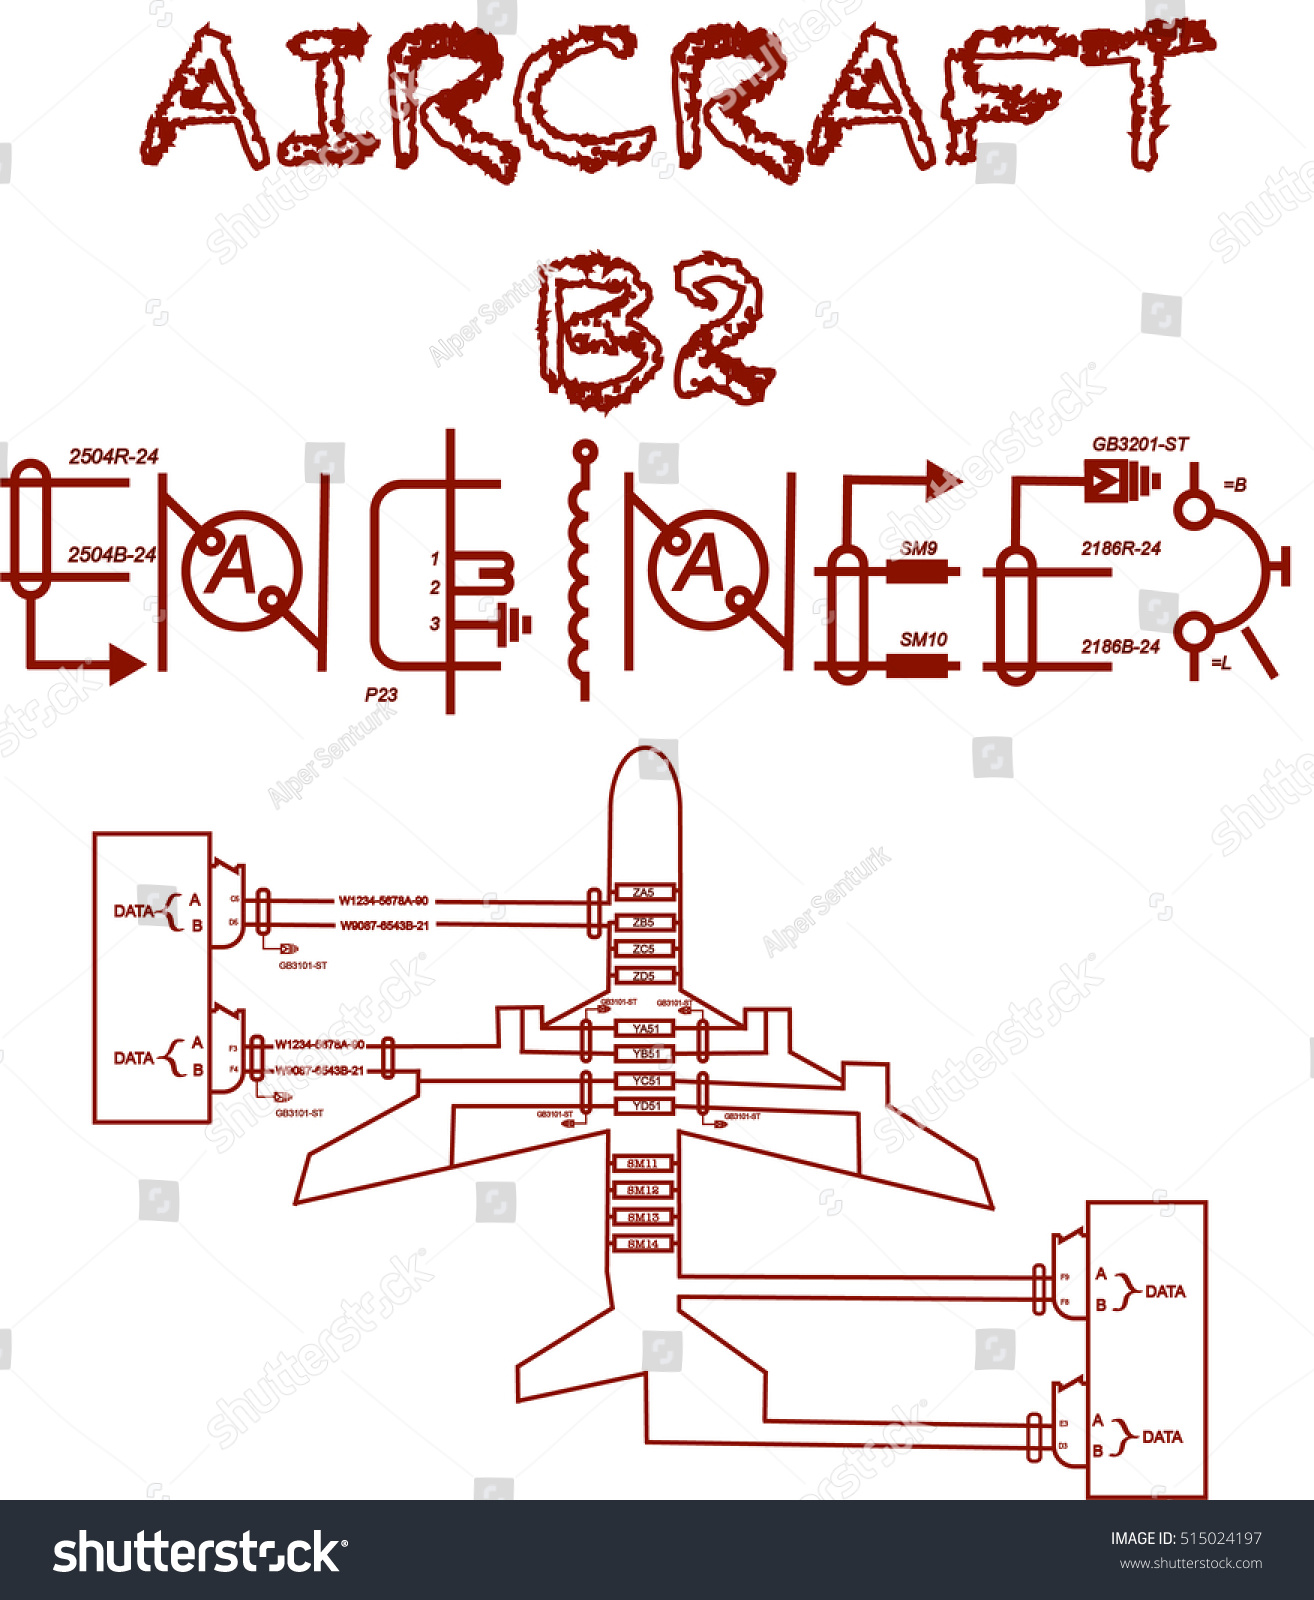 Aircraft B 2 Engineer Text Wiring Diagram Stock Vector Royalty Free And Schematic Diagrams B2 With Designed Like An For Printing